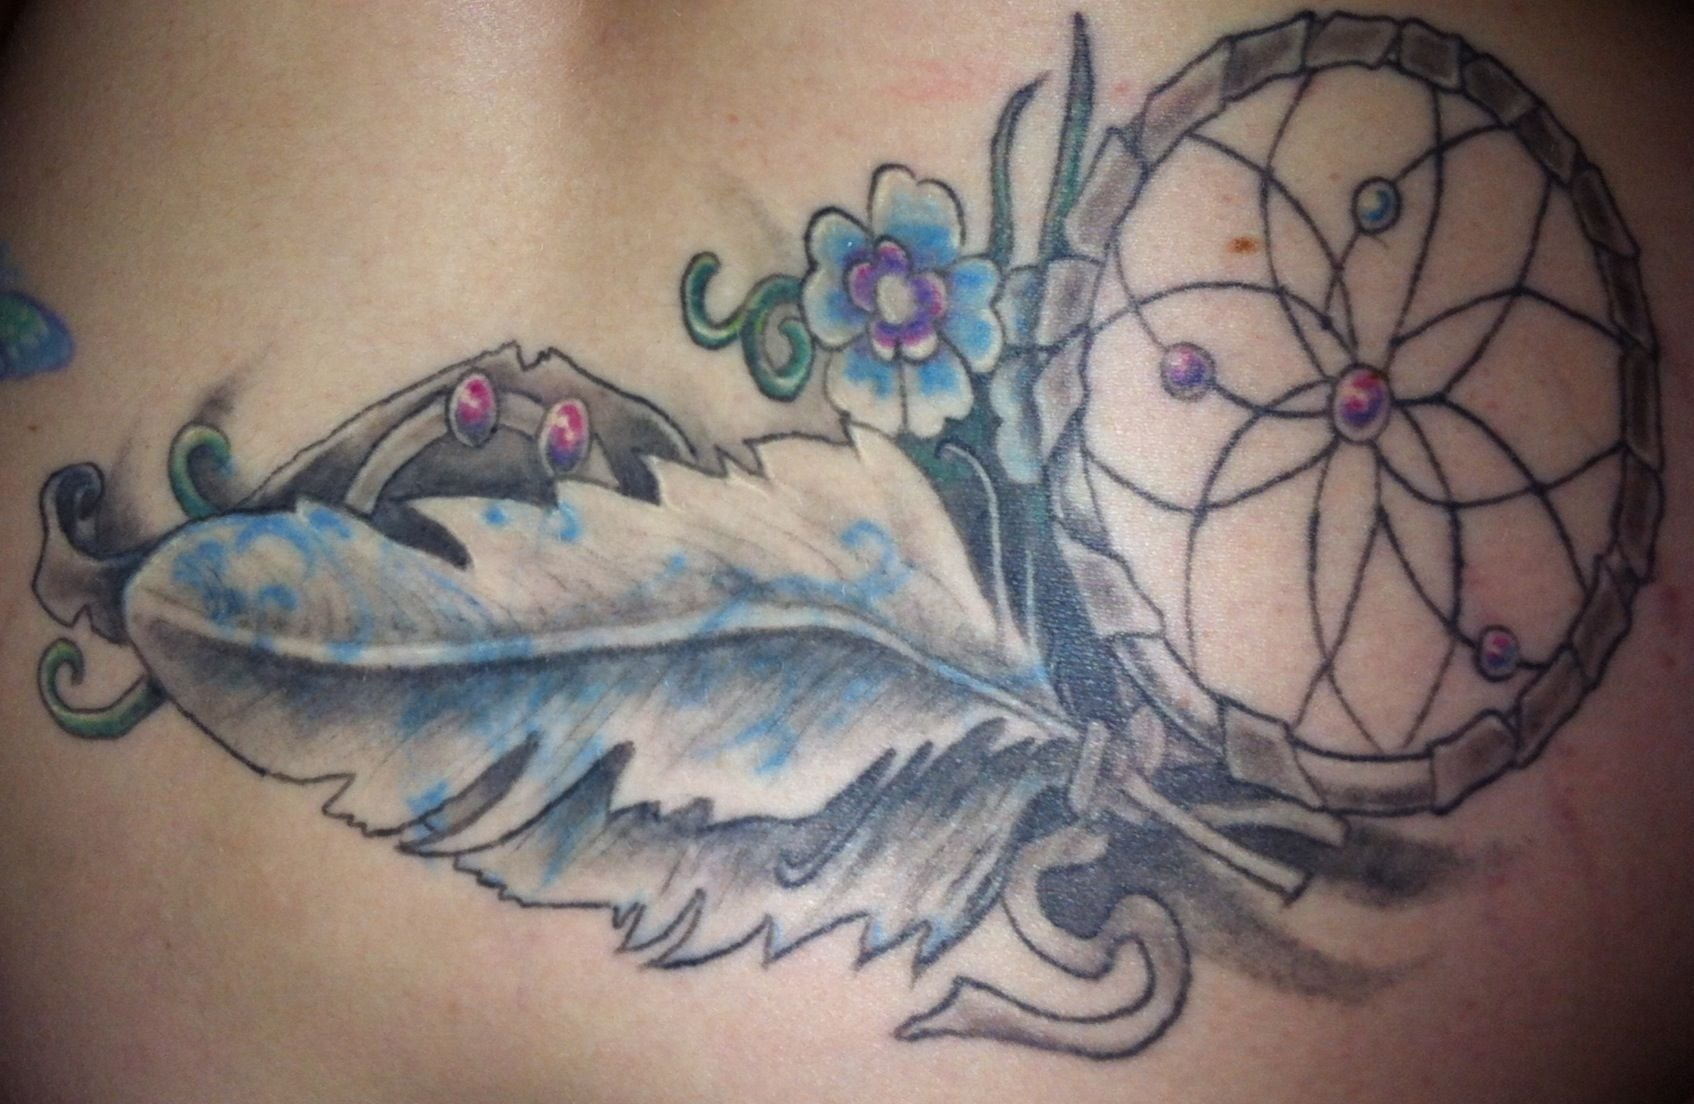 10 Elegant Tramp Stamp Cover Up Ideas my dream catcher tattoo this is a beautiful cover up job done of my 2020